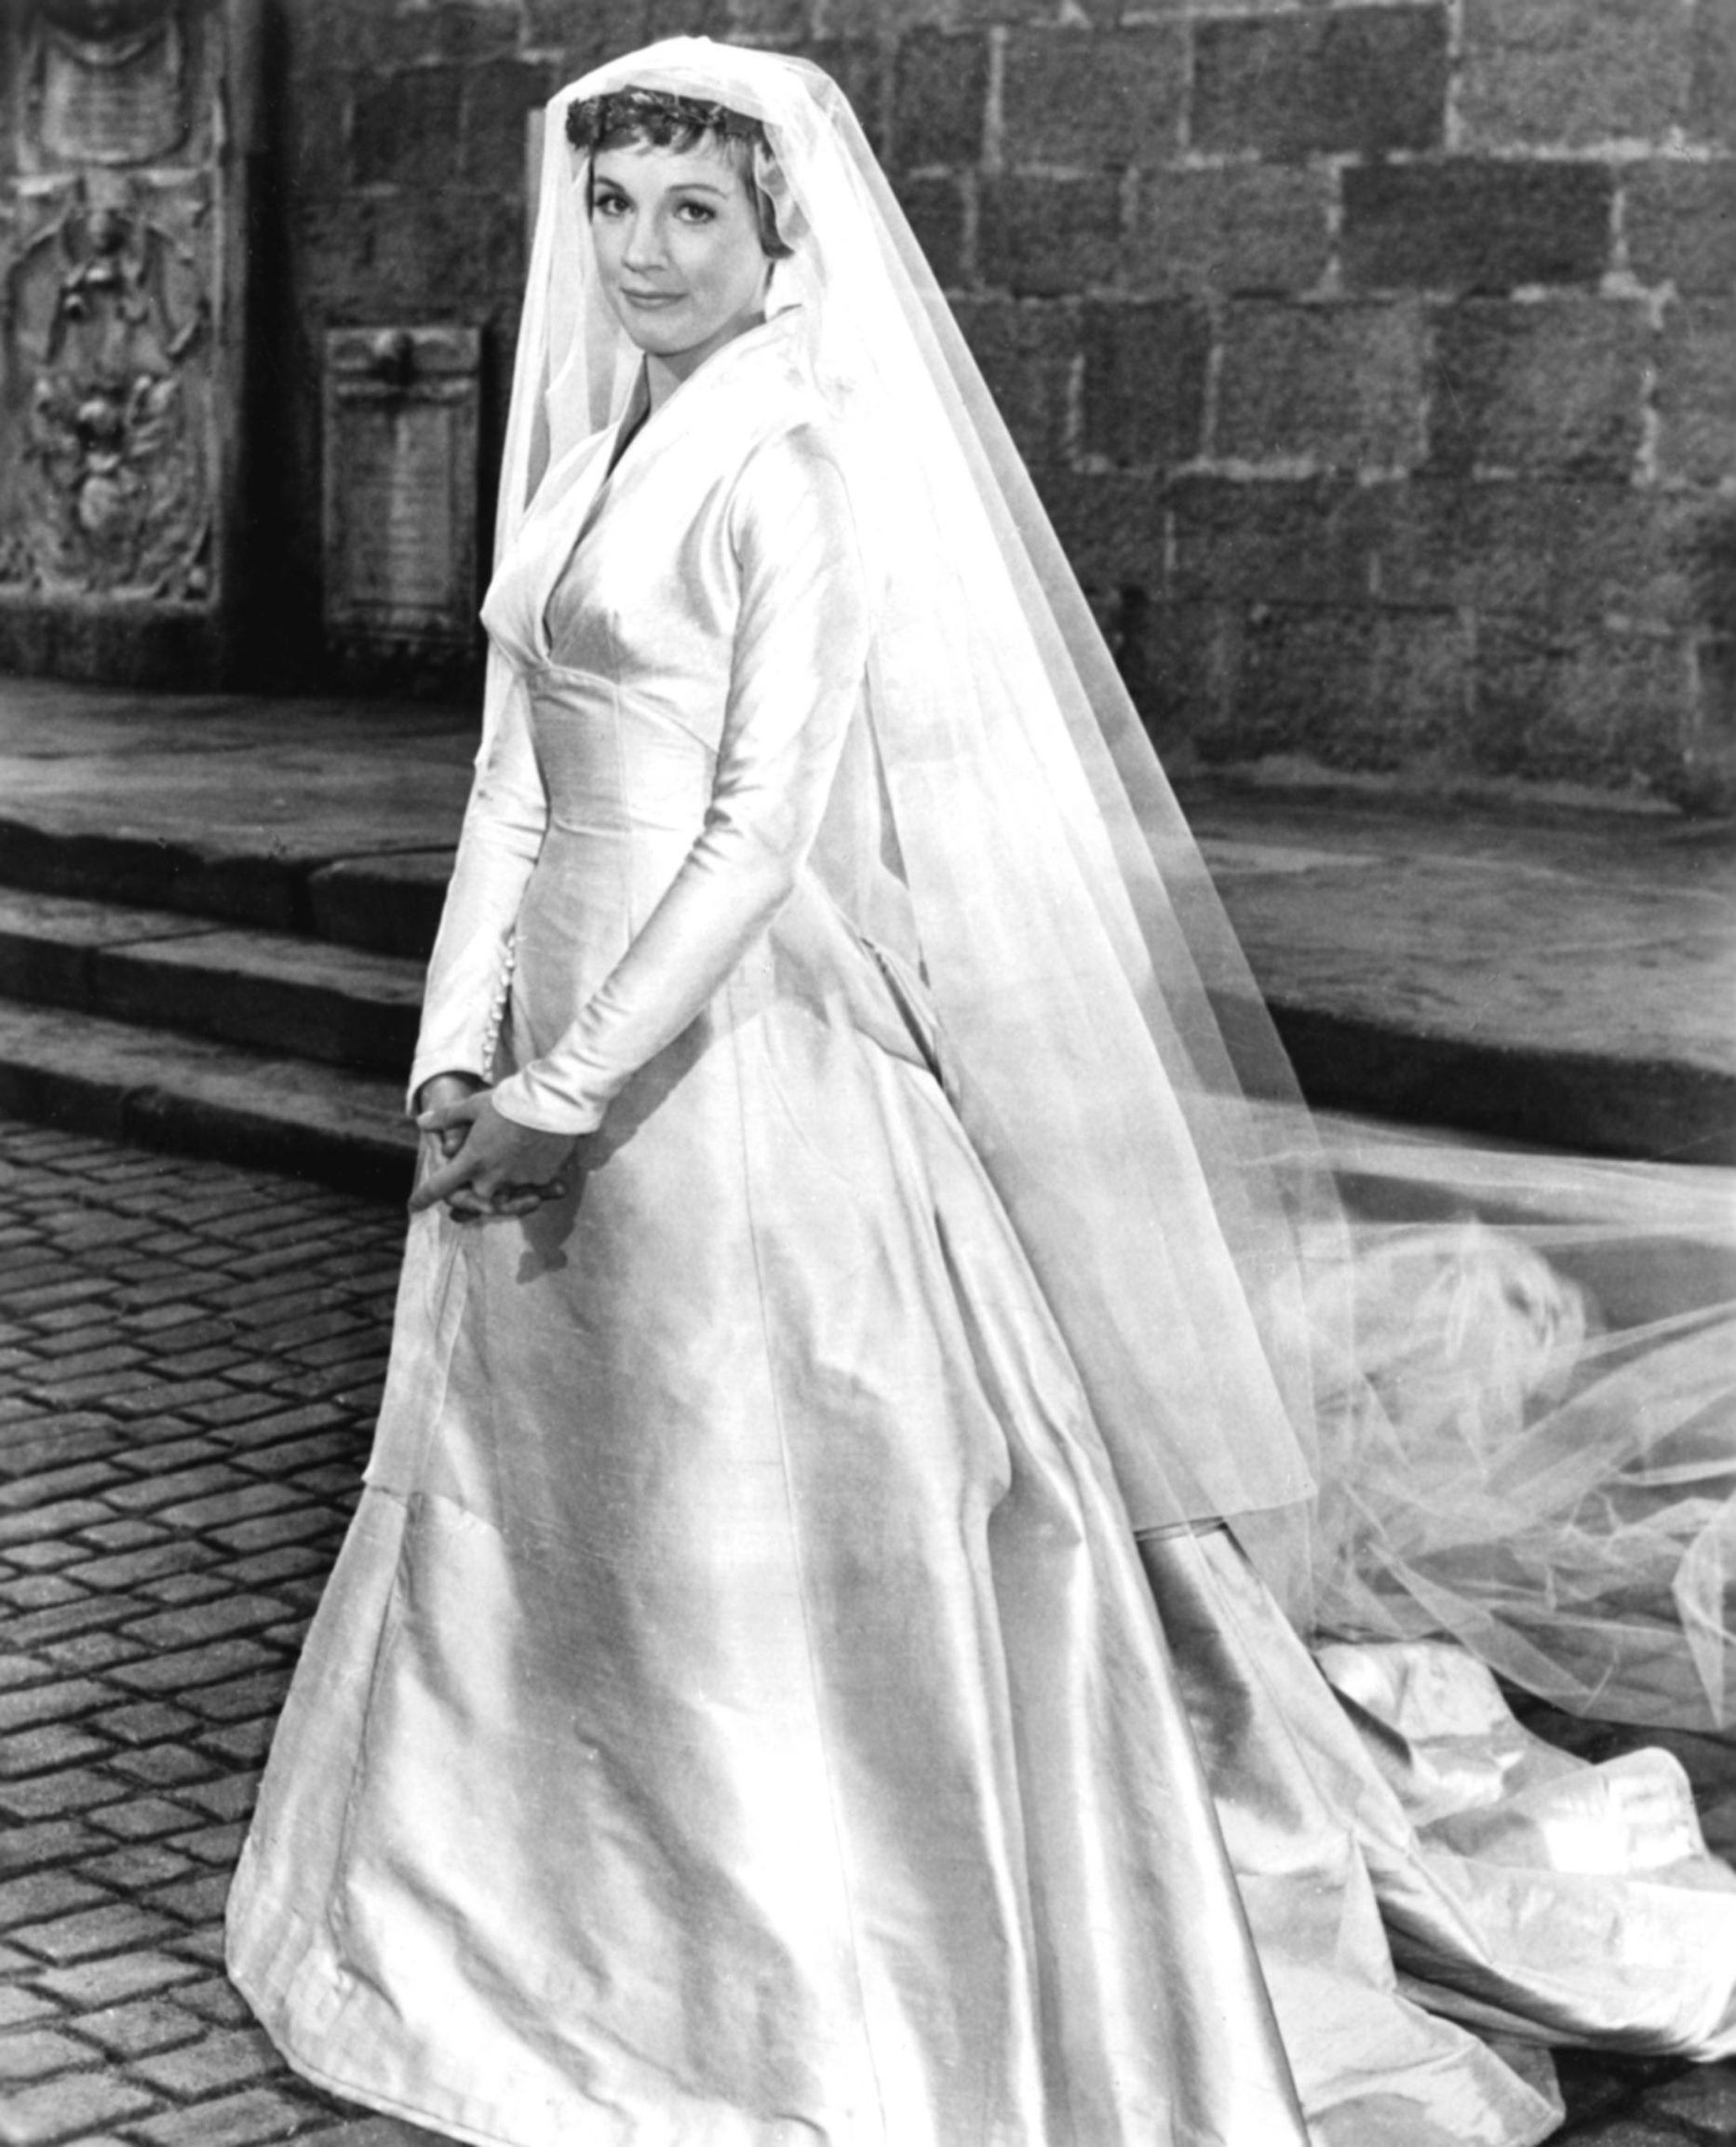 Best wedding dresses of all time  These Iconic Movie Wedding Dresses Will Take You Way Way Back